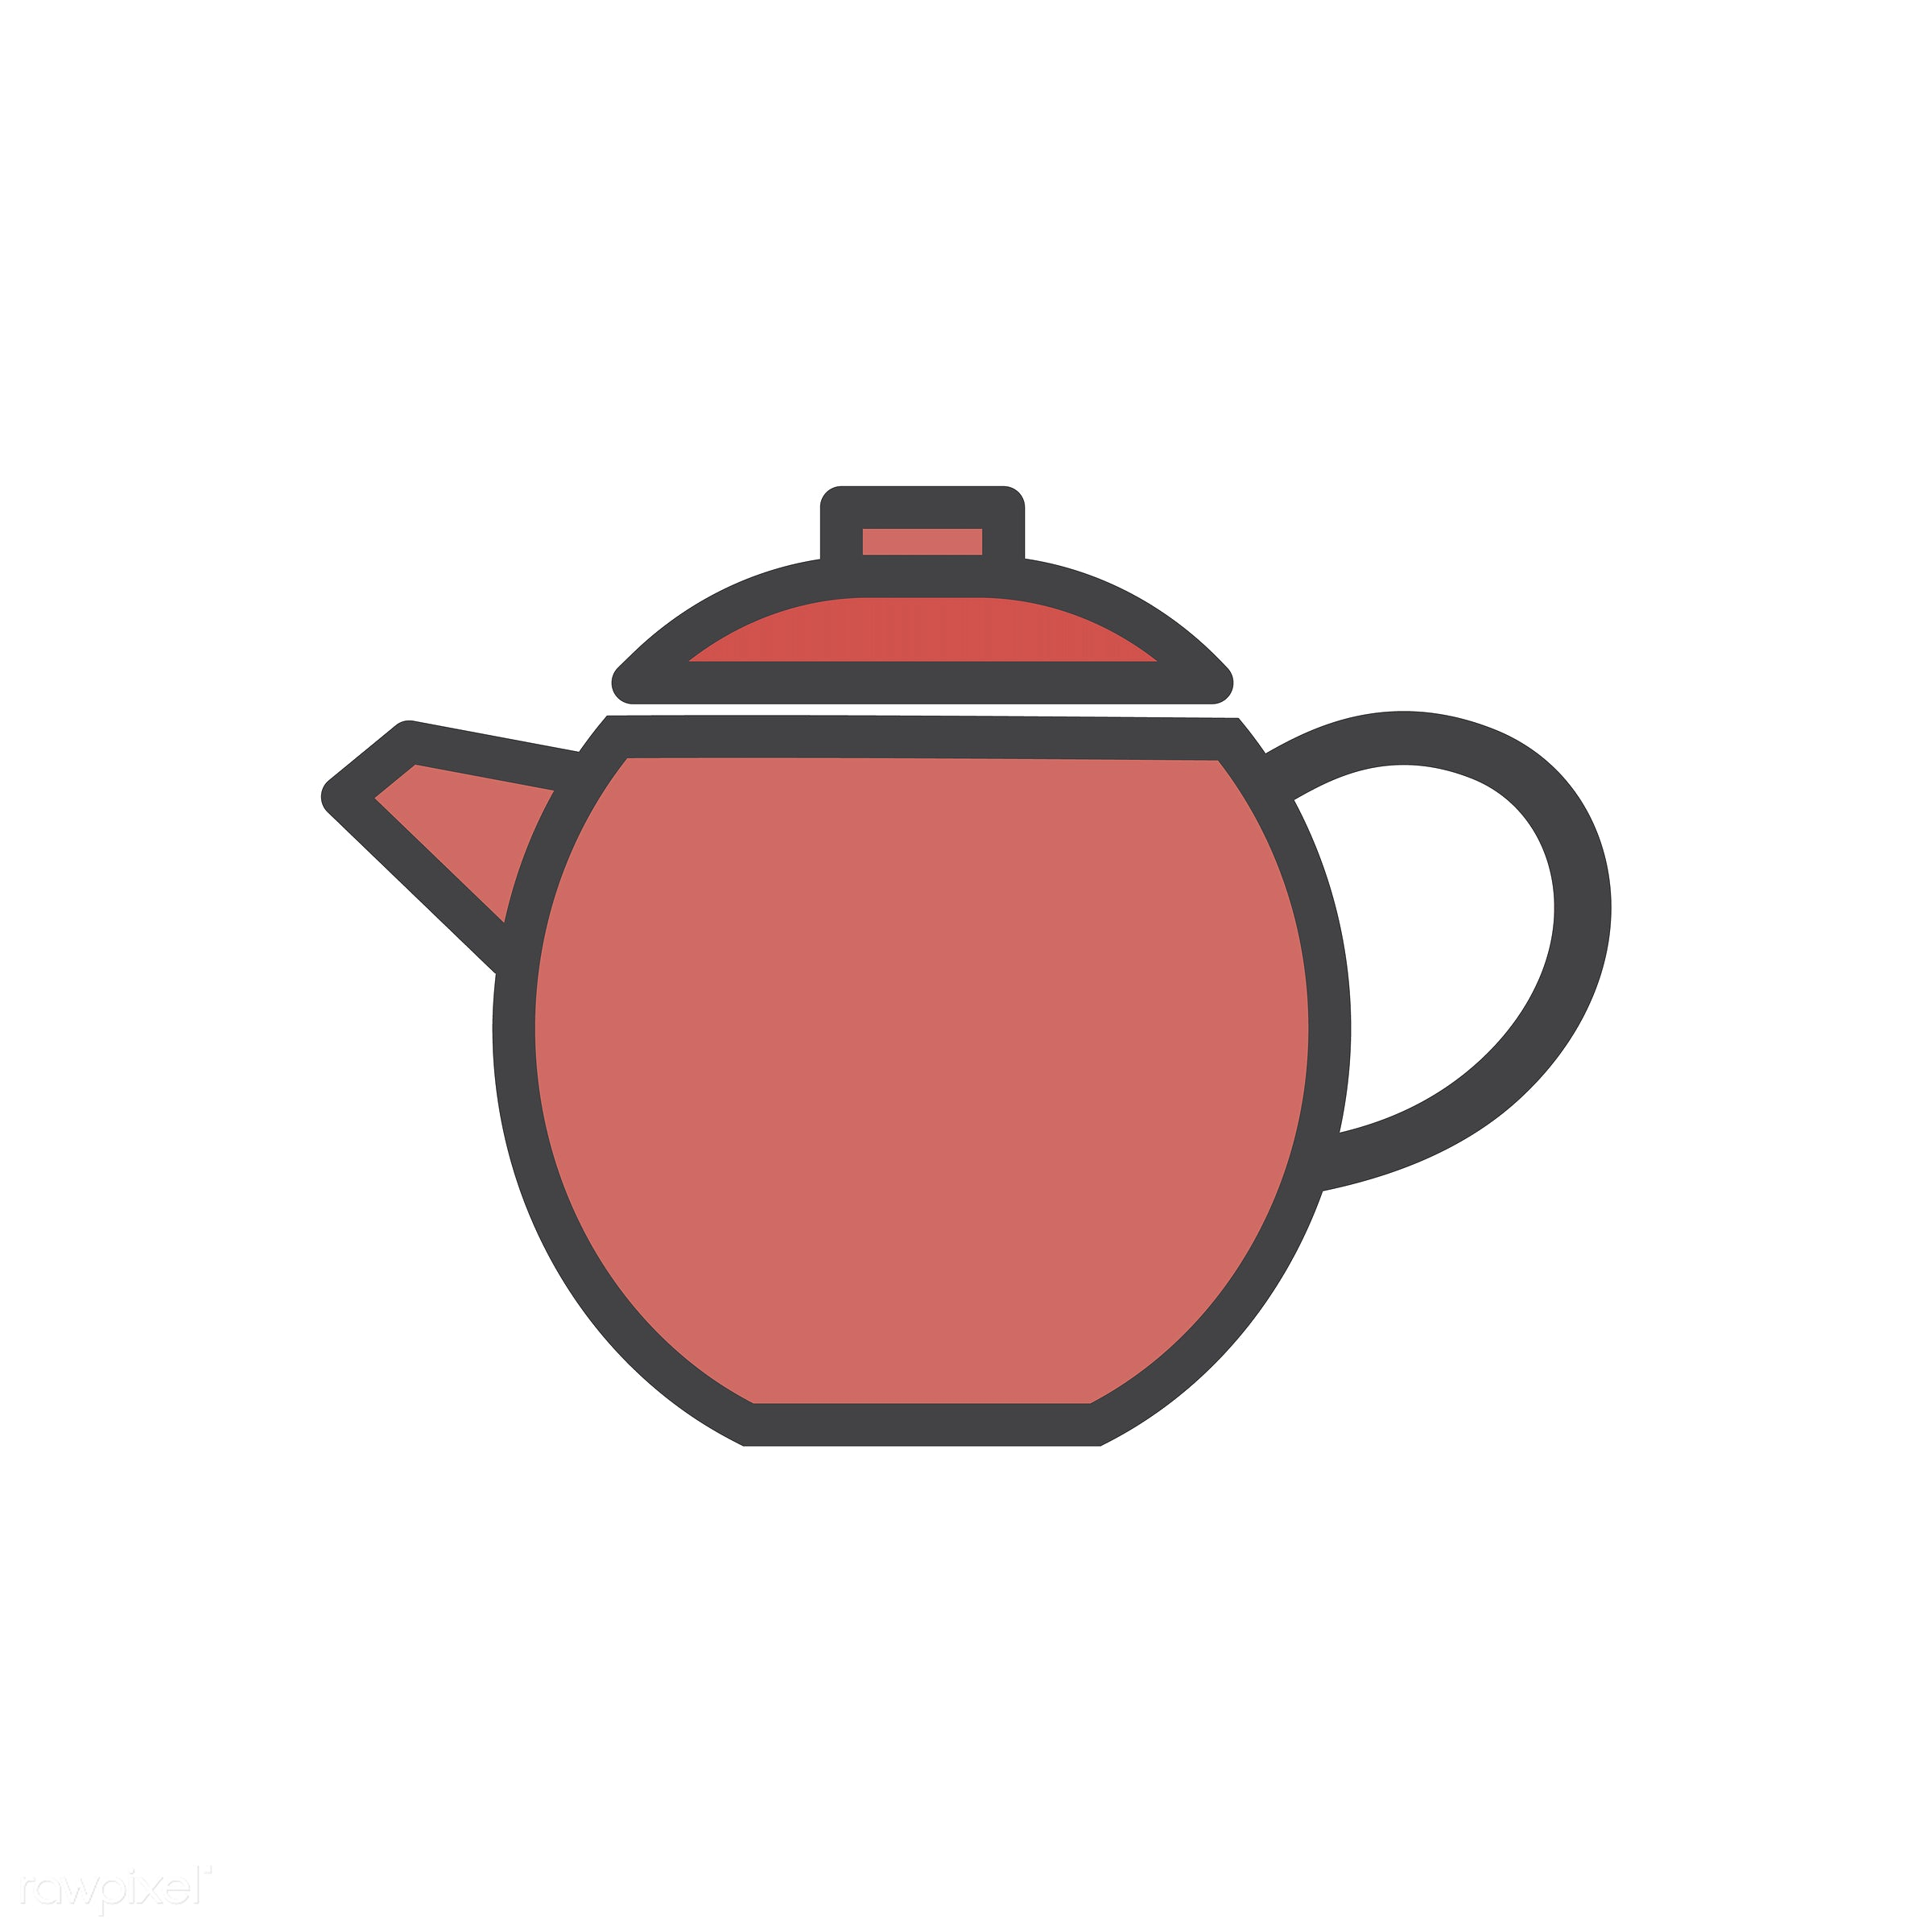 tea, abode, adults, comfort, cozy, dwelling, home, homely, hot drink, house, household, living, pad, residence, teapot,...